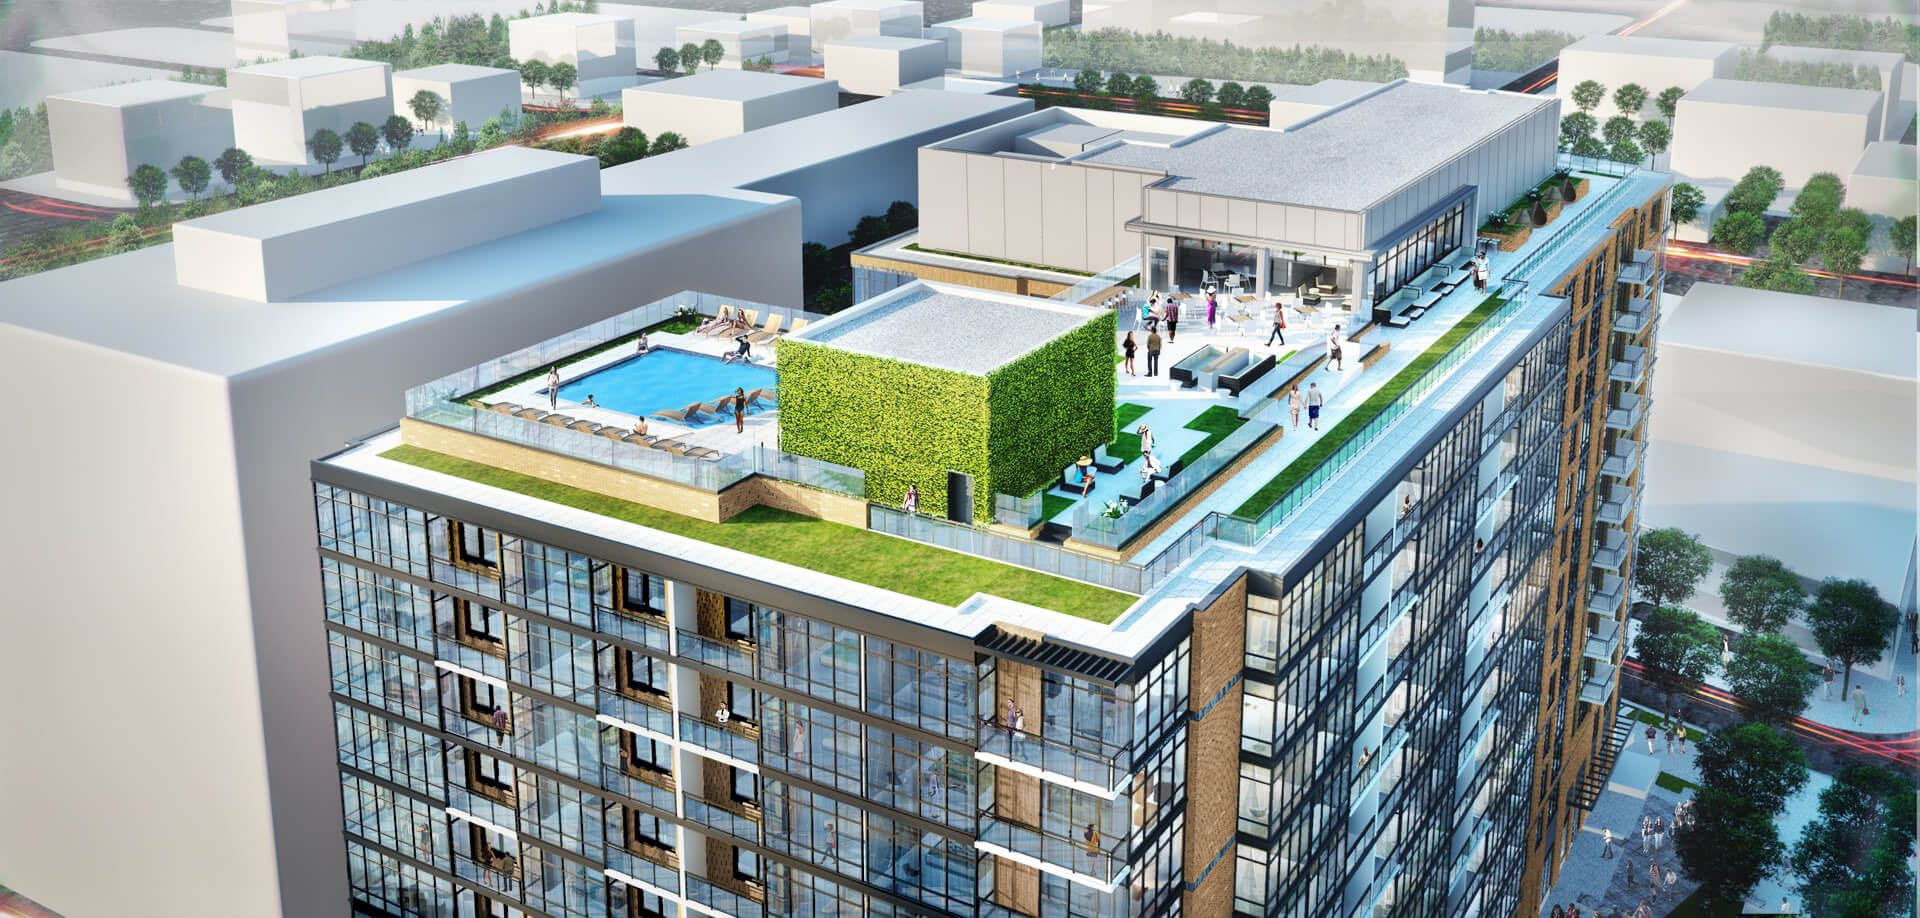 5 Stellar Amenities Your Navy Yard Apartment Can't Be Without